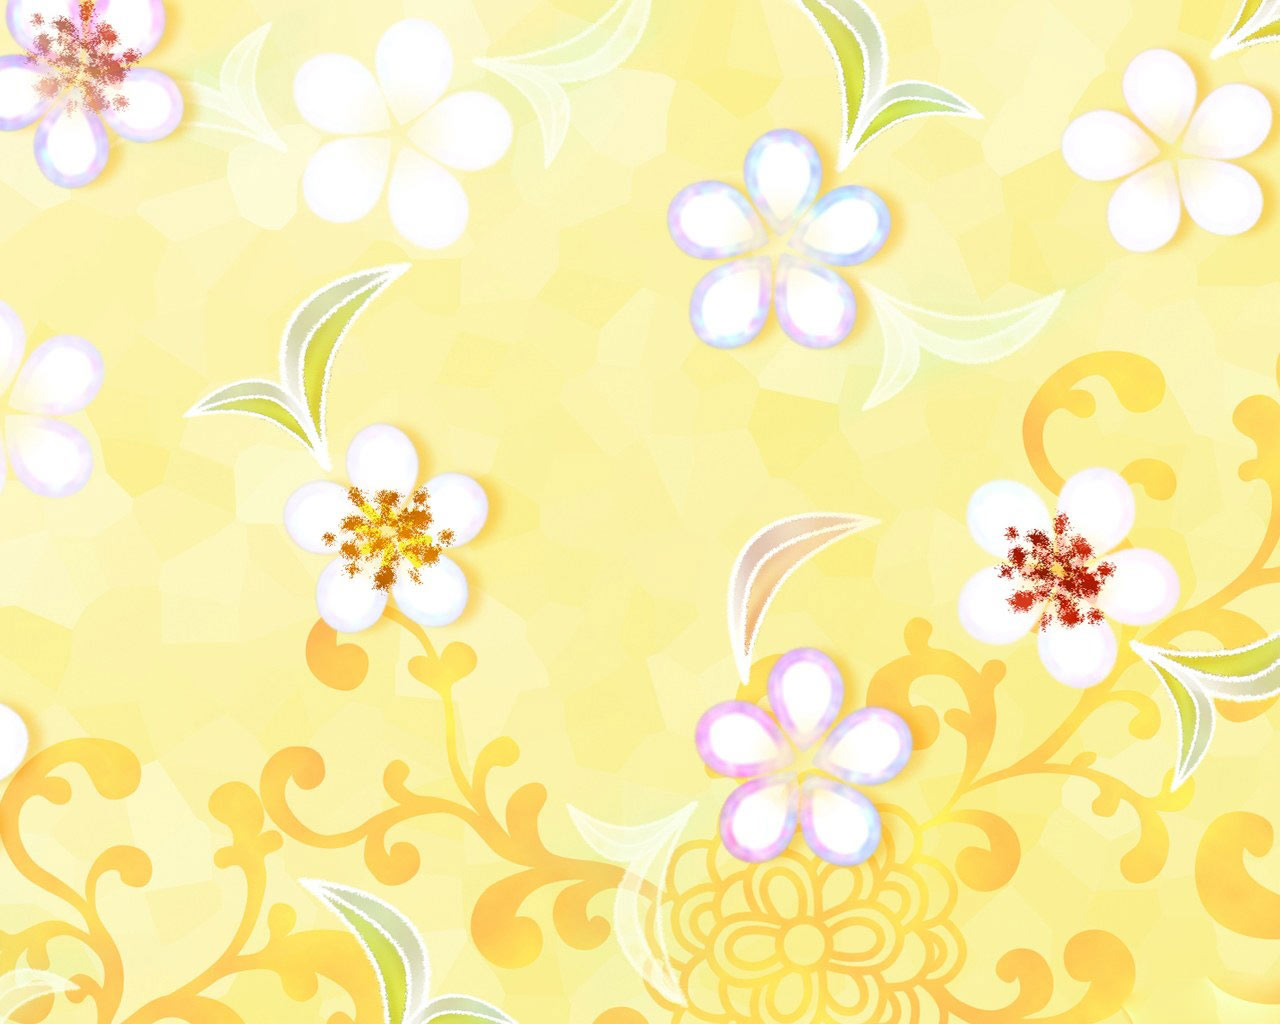 Spring flowers yellow background hd Wallpaper High 1280x1024